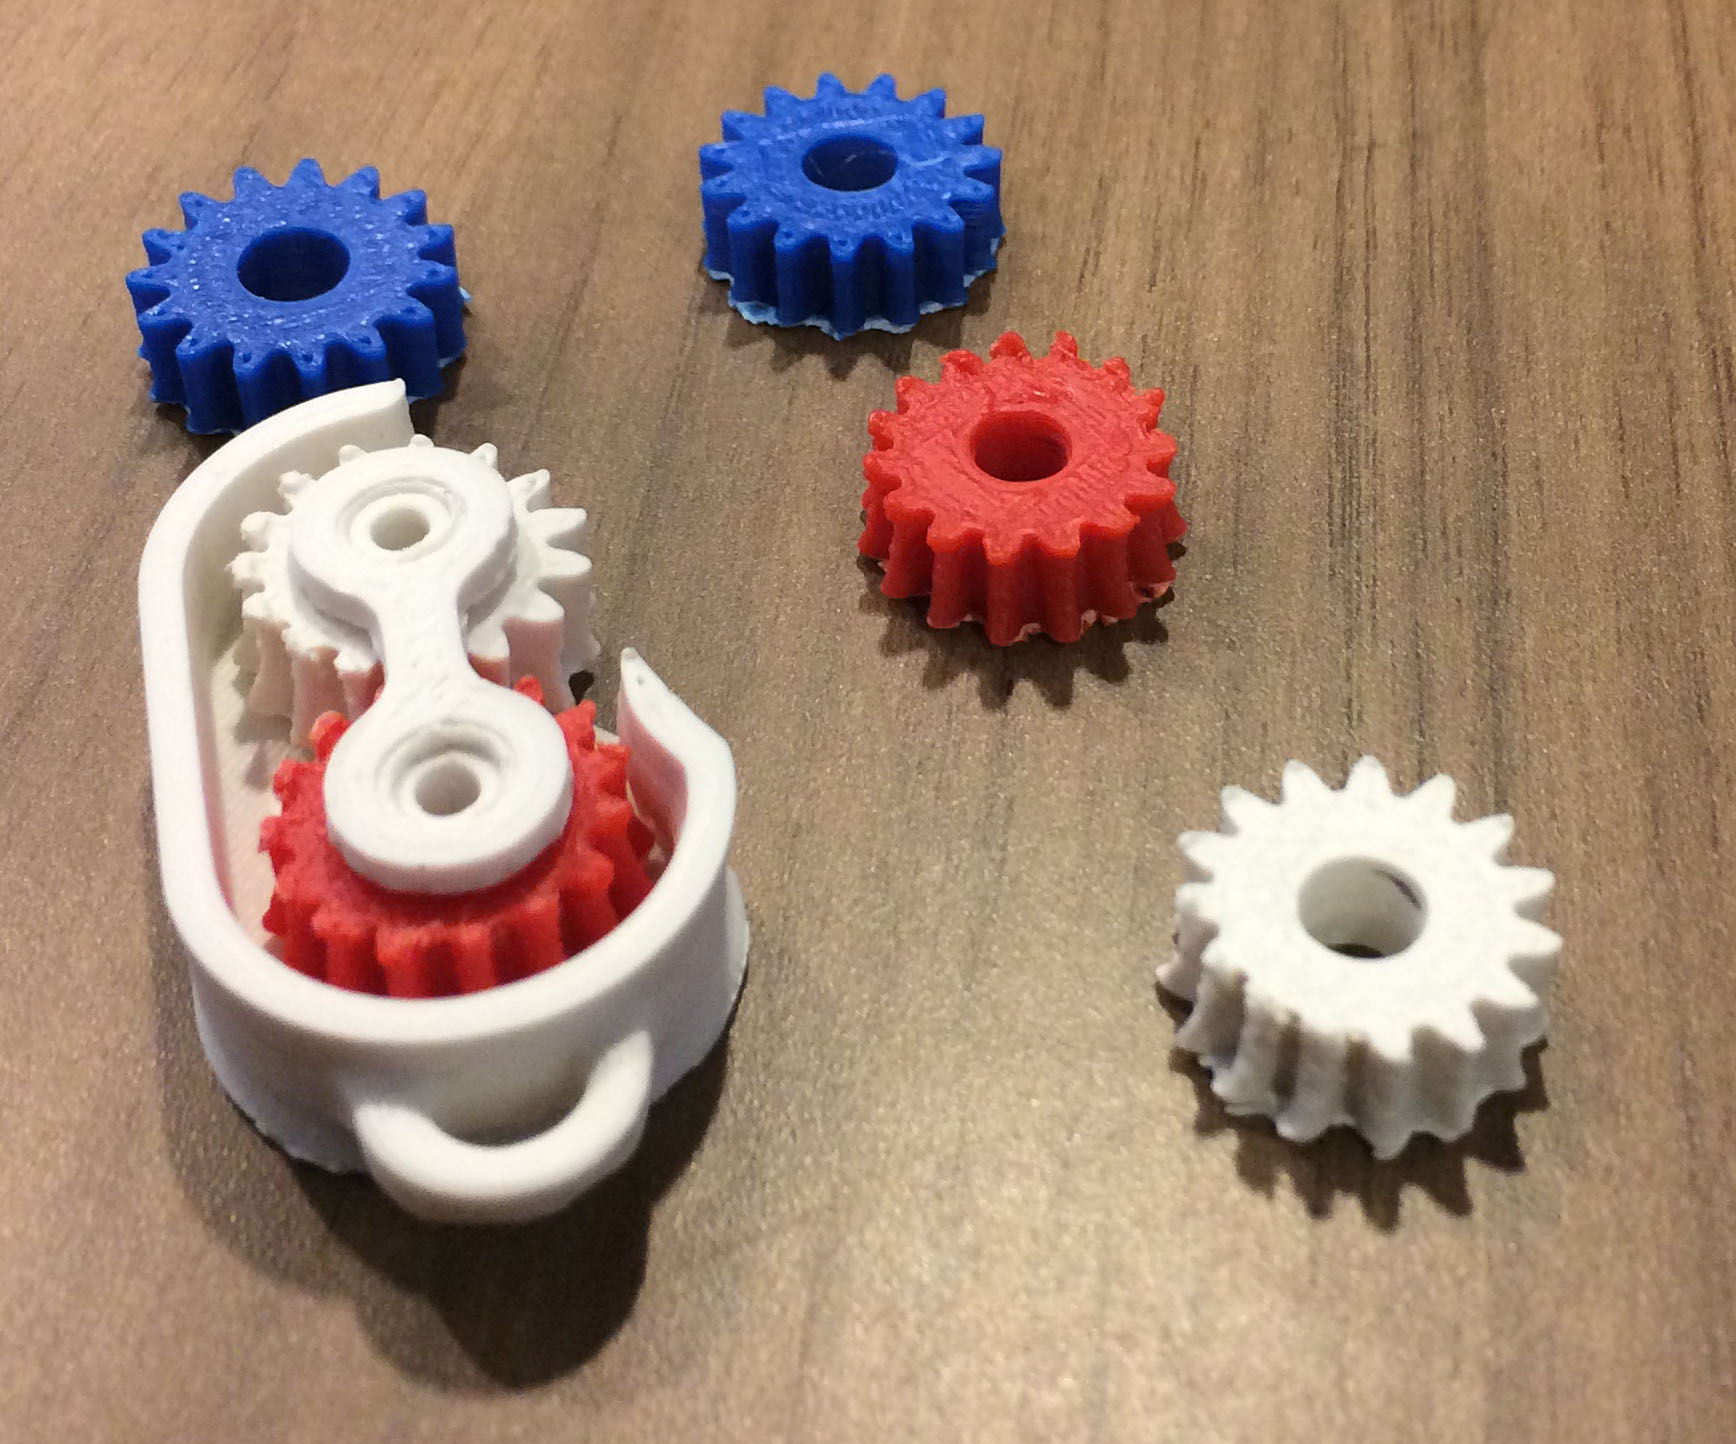 Special gears designed to allowed an optical tube to twist.